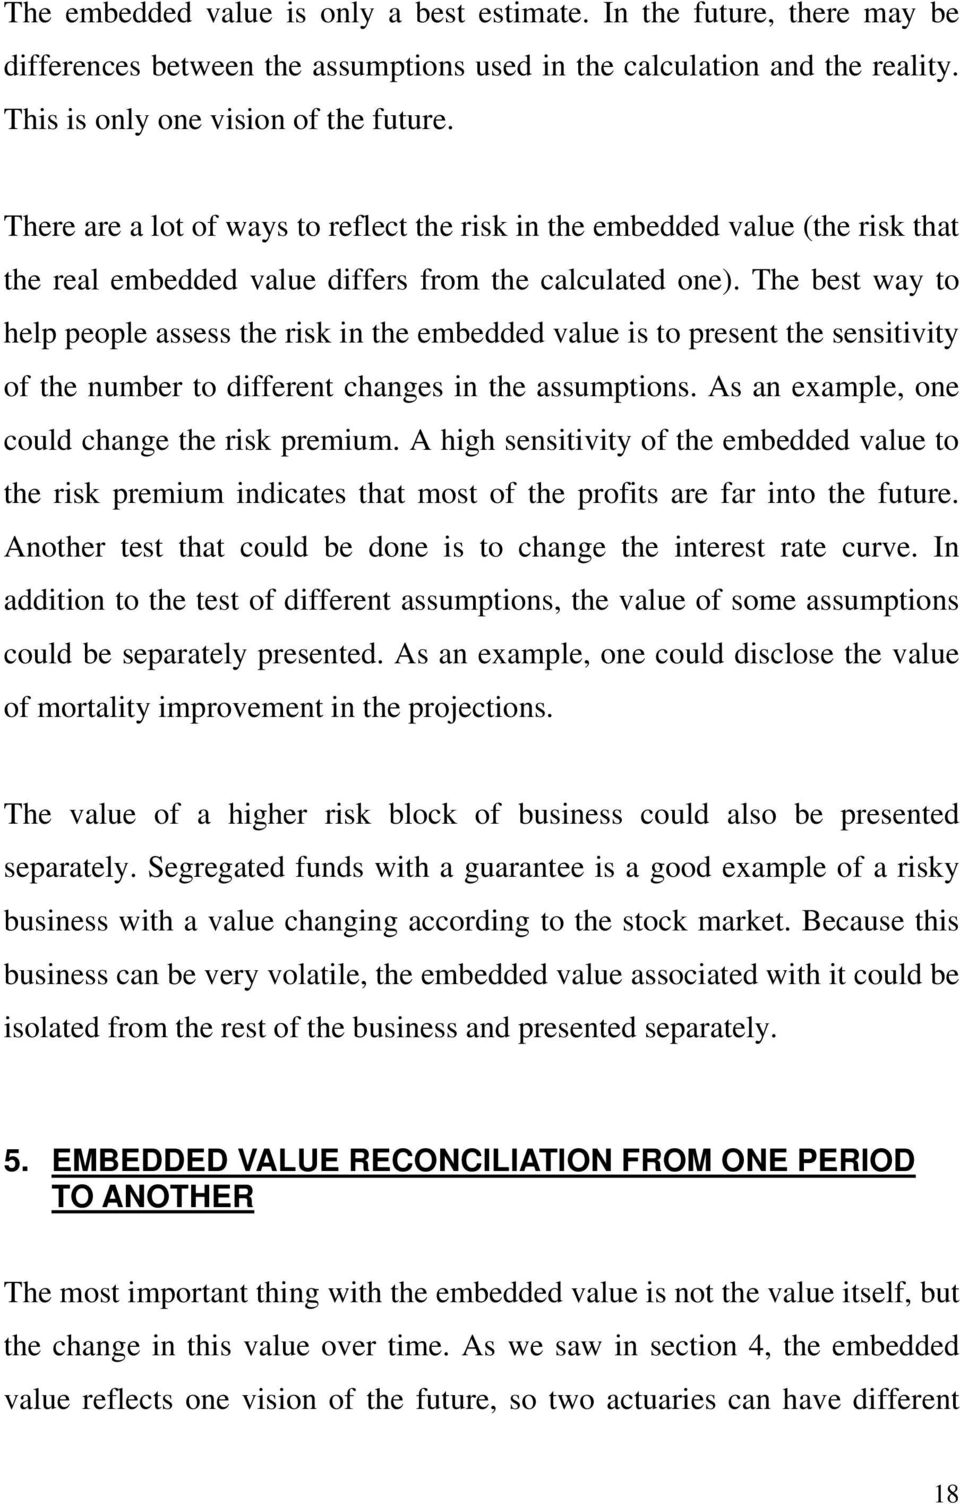 The bes way o help people assess he risk in he embedded alue is o presen he sensiiiy of he number o differen changes in he assumpions. As an example, one could change he risk premium.